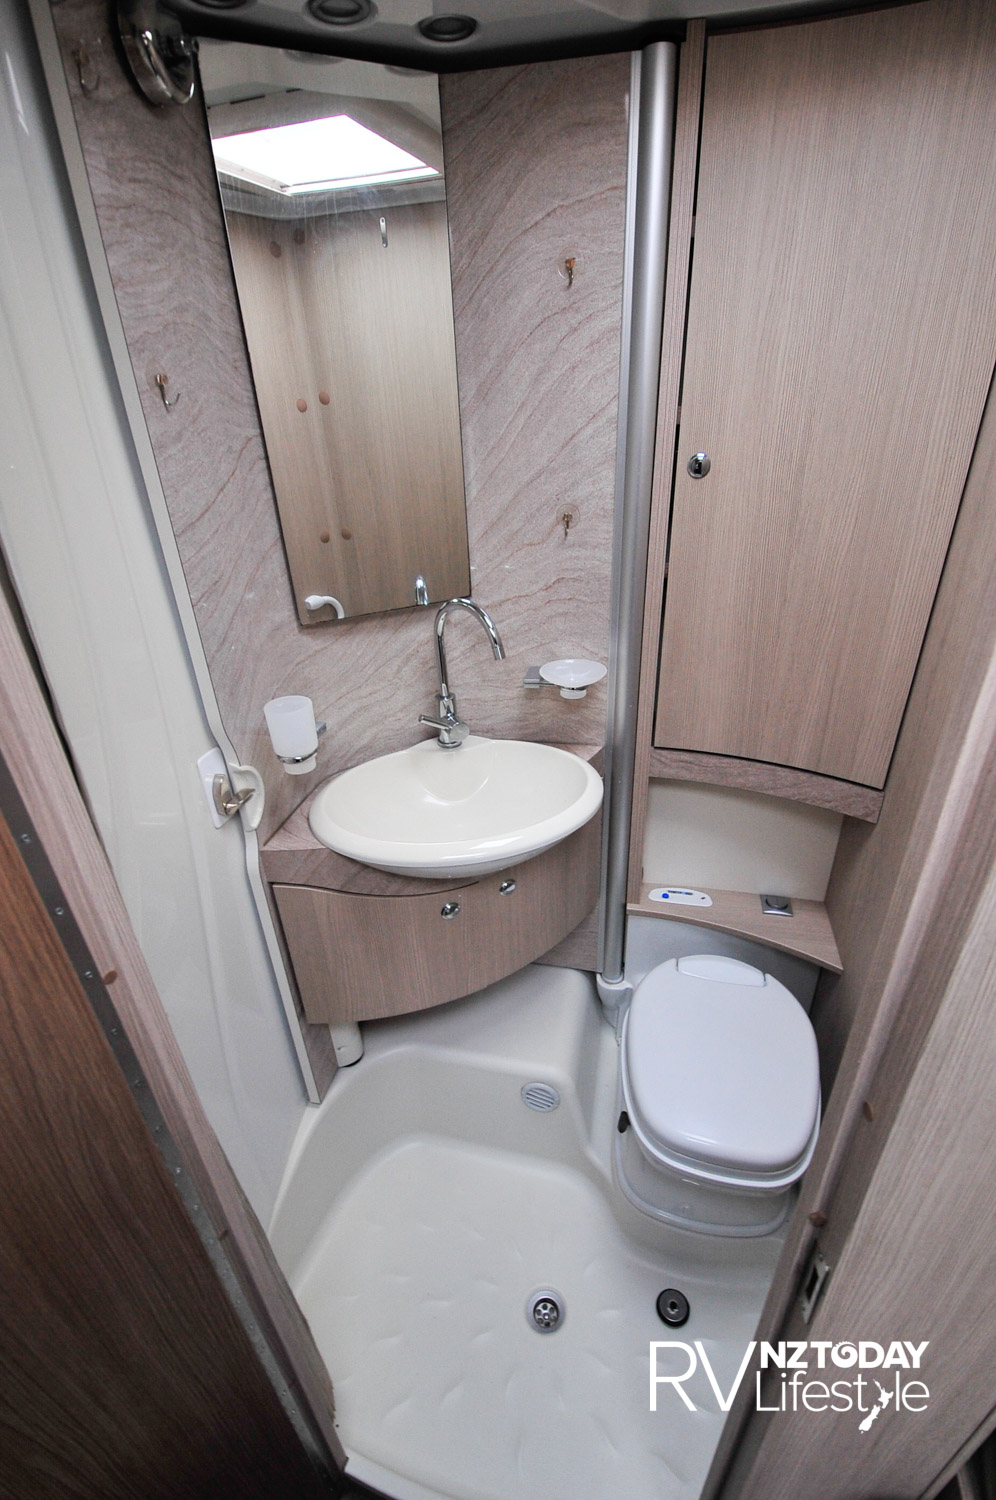 The bathroom has good storage behind the toilet, the lightswitch is behind the toilet as well. Vanity basin, mirror with side lights and above, storage underneath,, Clip on the left unclips